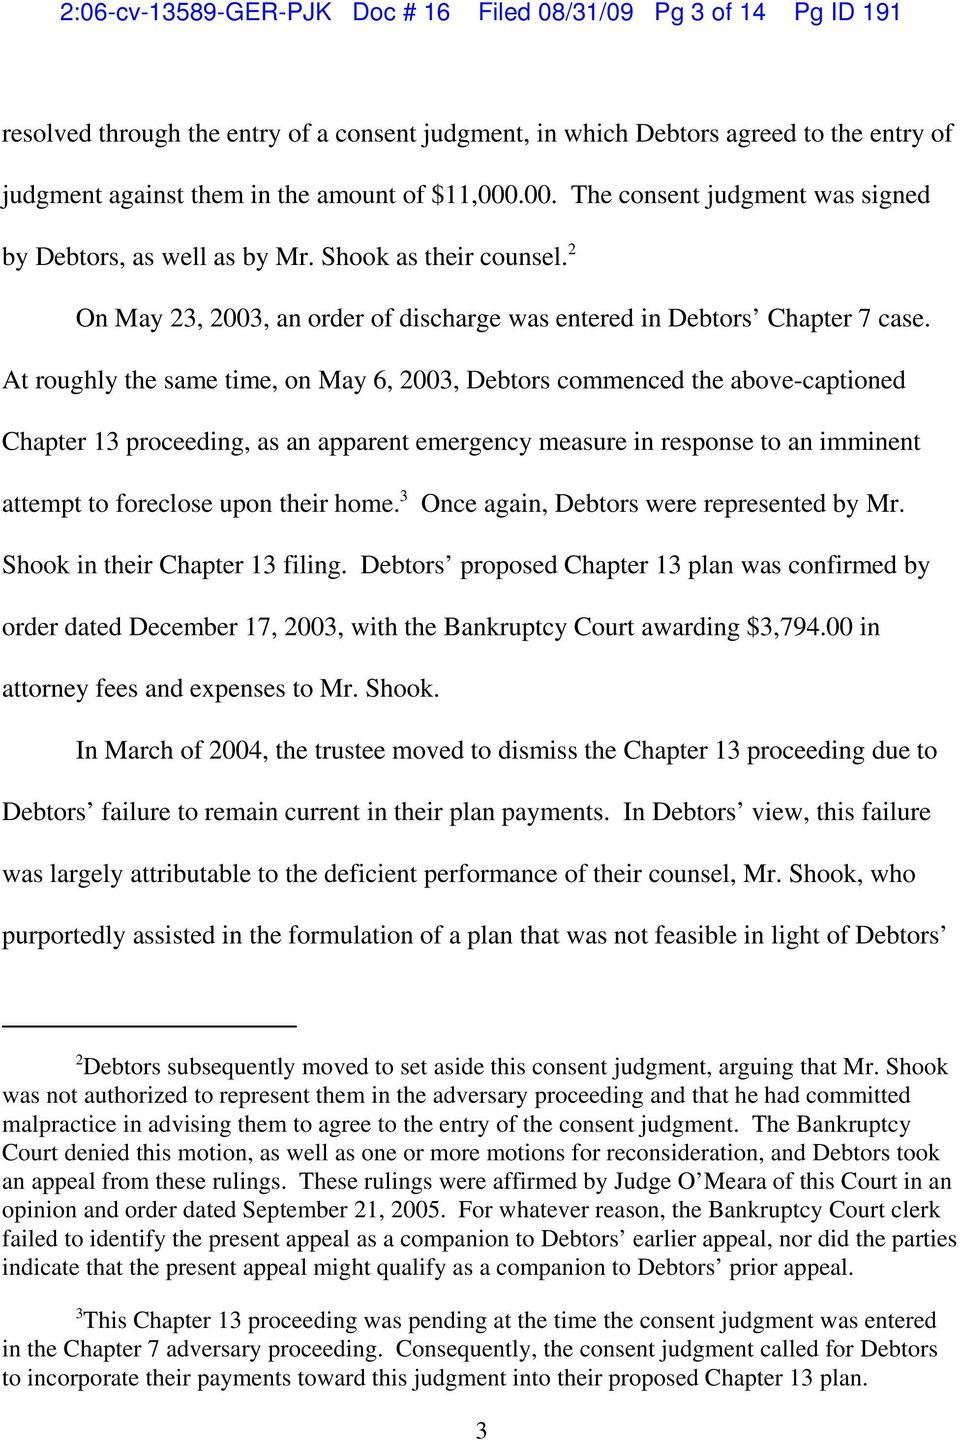 At roughly the same time, on May 6, 2003, Debtors commenced the above-captioned Chapter 13 proceeding, as an apparent emergency measure in response to an imminent attempt to foreclose upon their home.